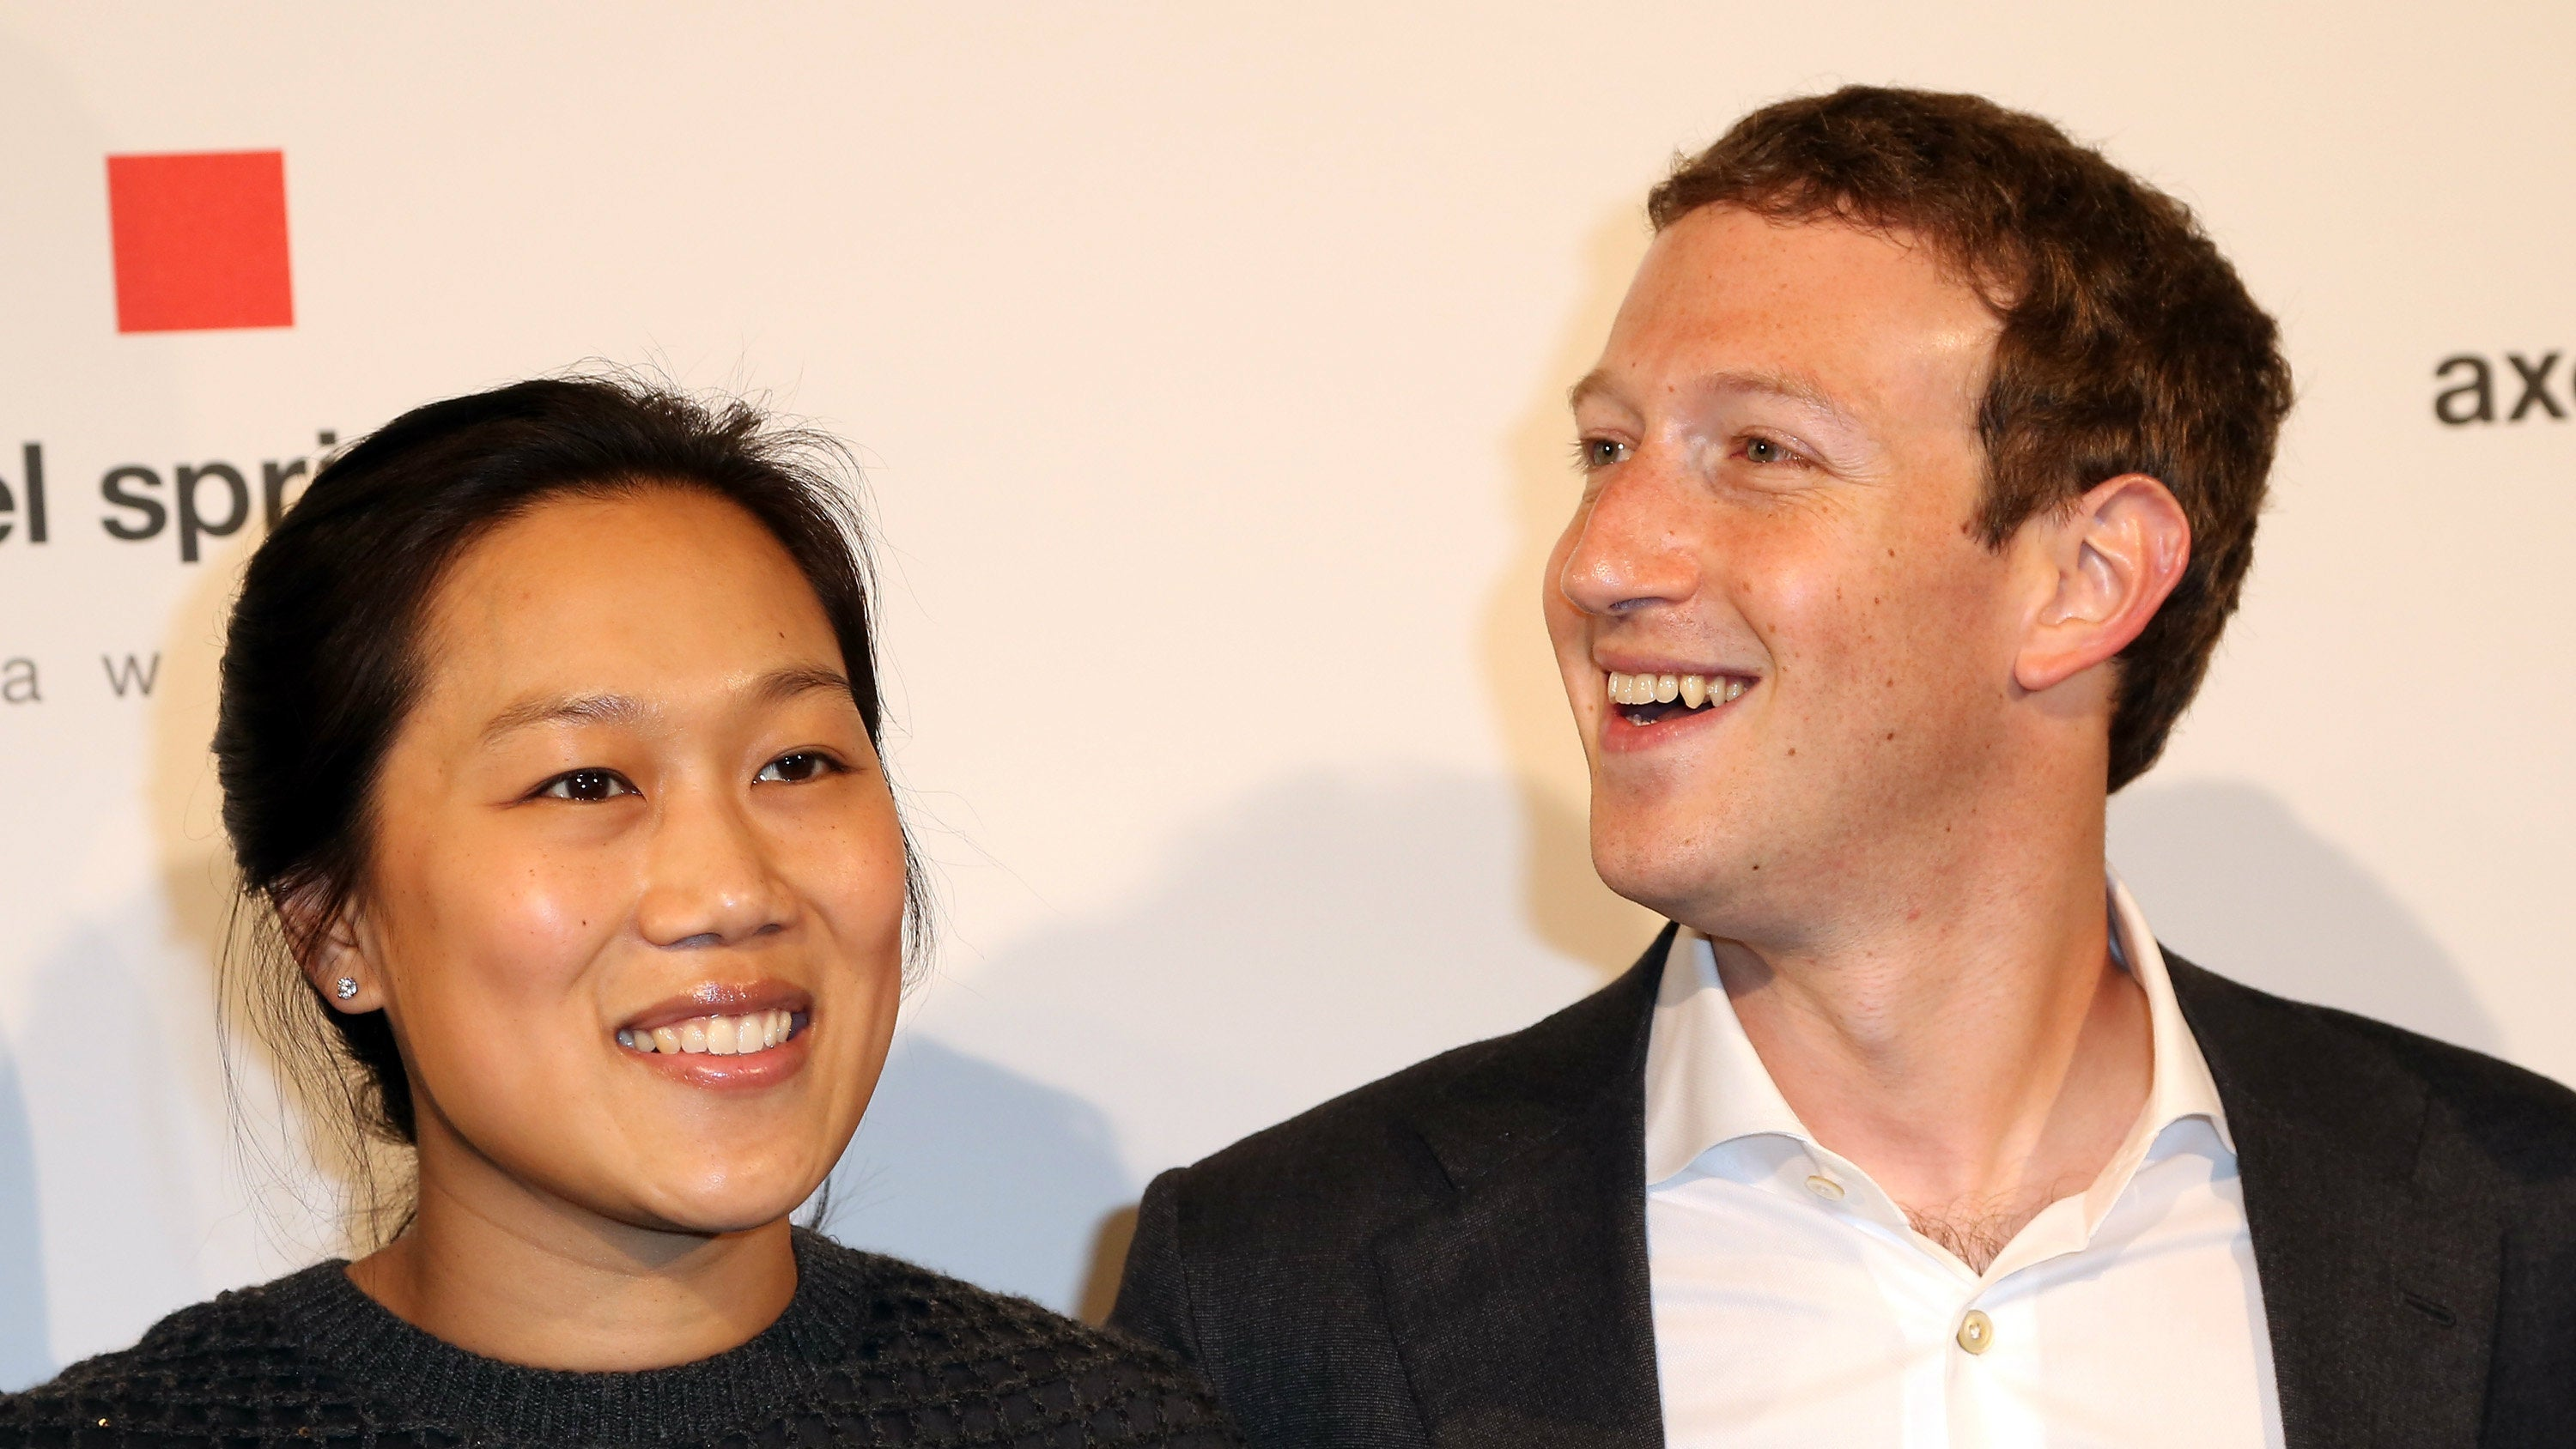 Mark Zuckerberg is dropping his Hawaiian land lawsuits, calling them 'a mistake'